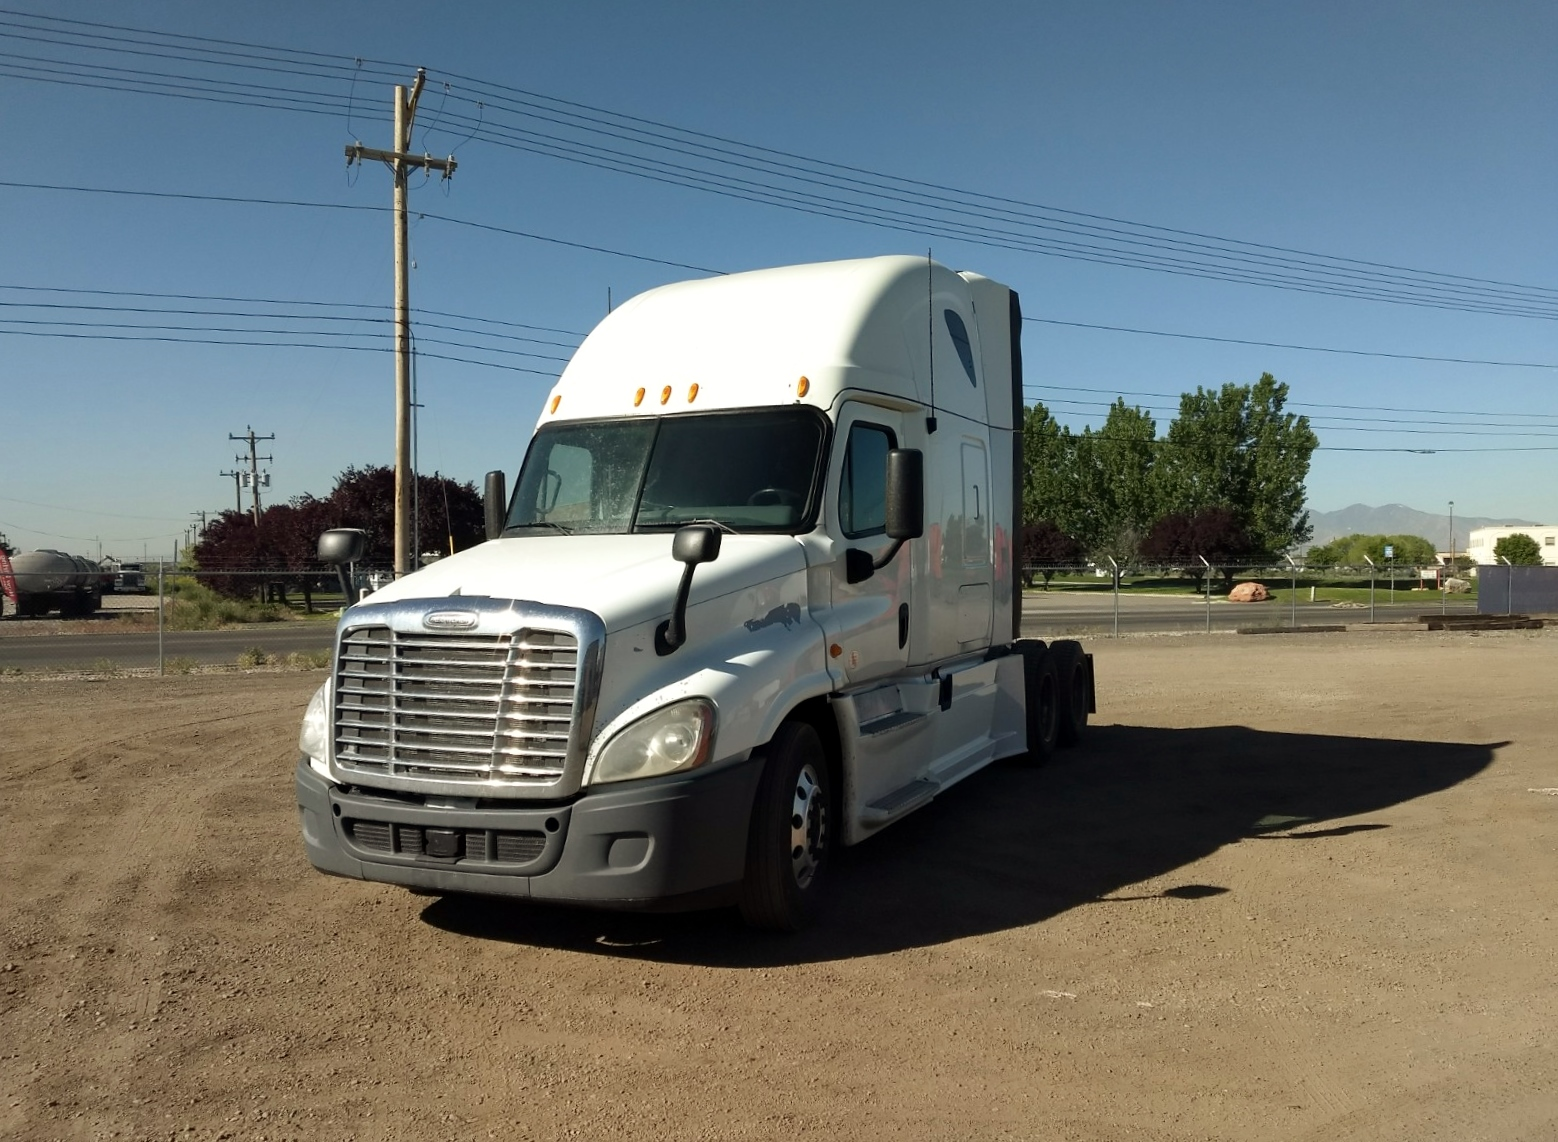 USED 2013 FREIGHTLINER CASCADIA SLEEPER TRUCK #123579